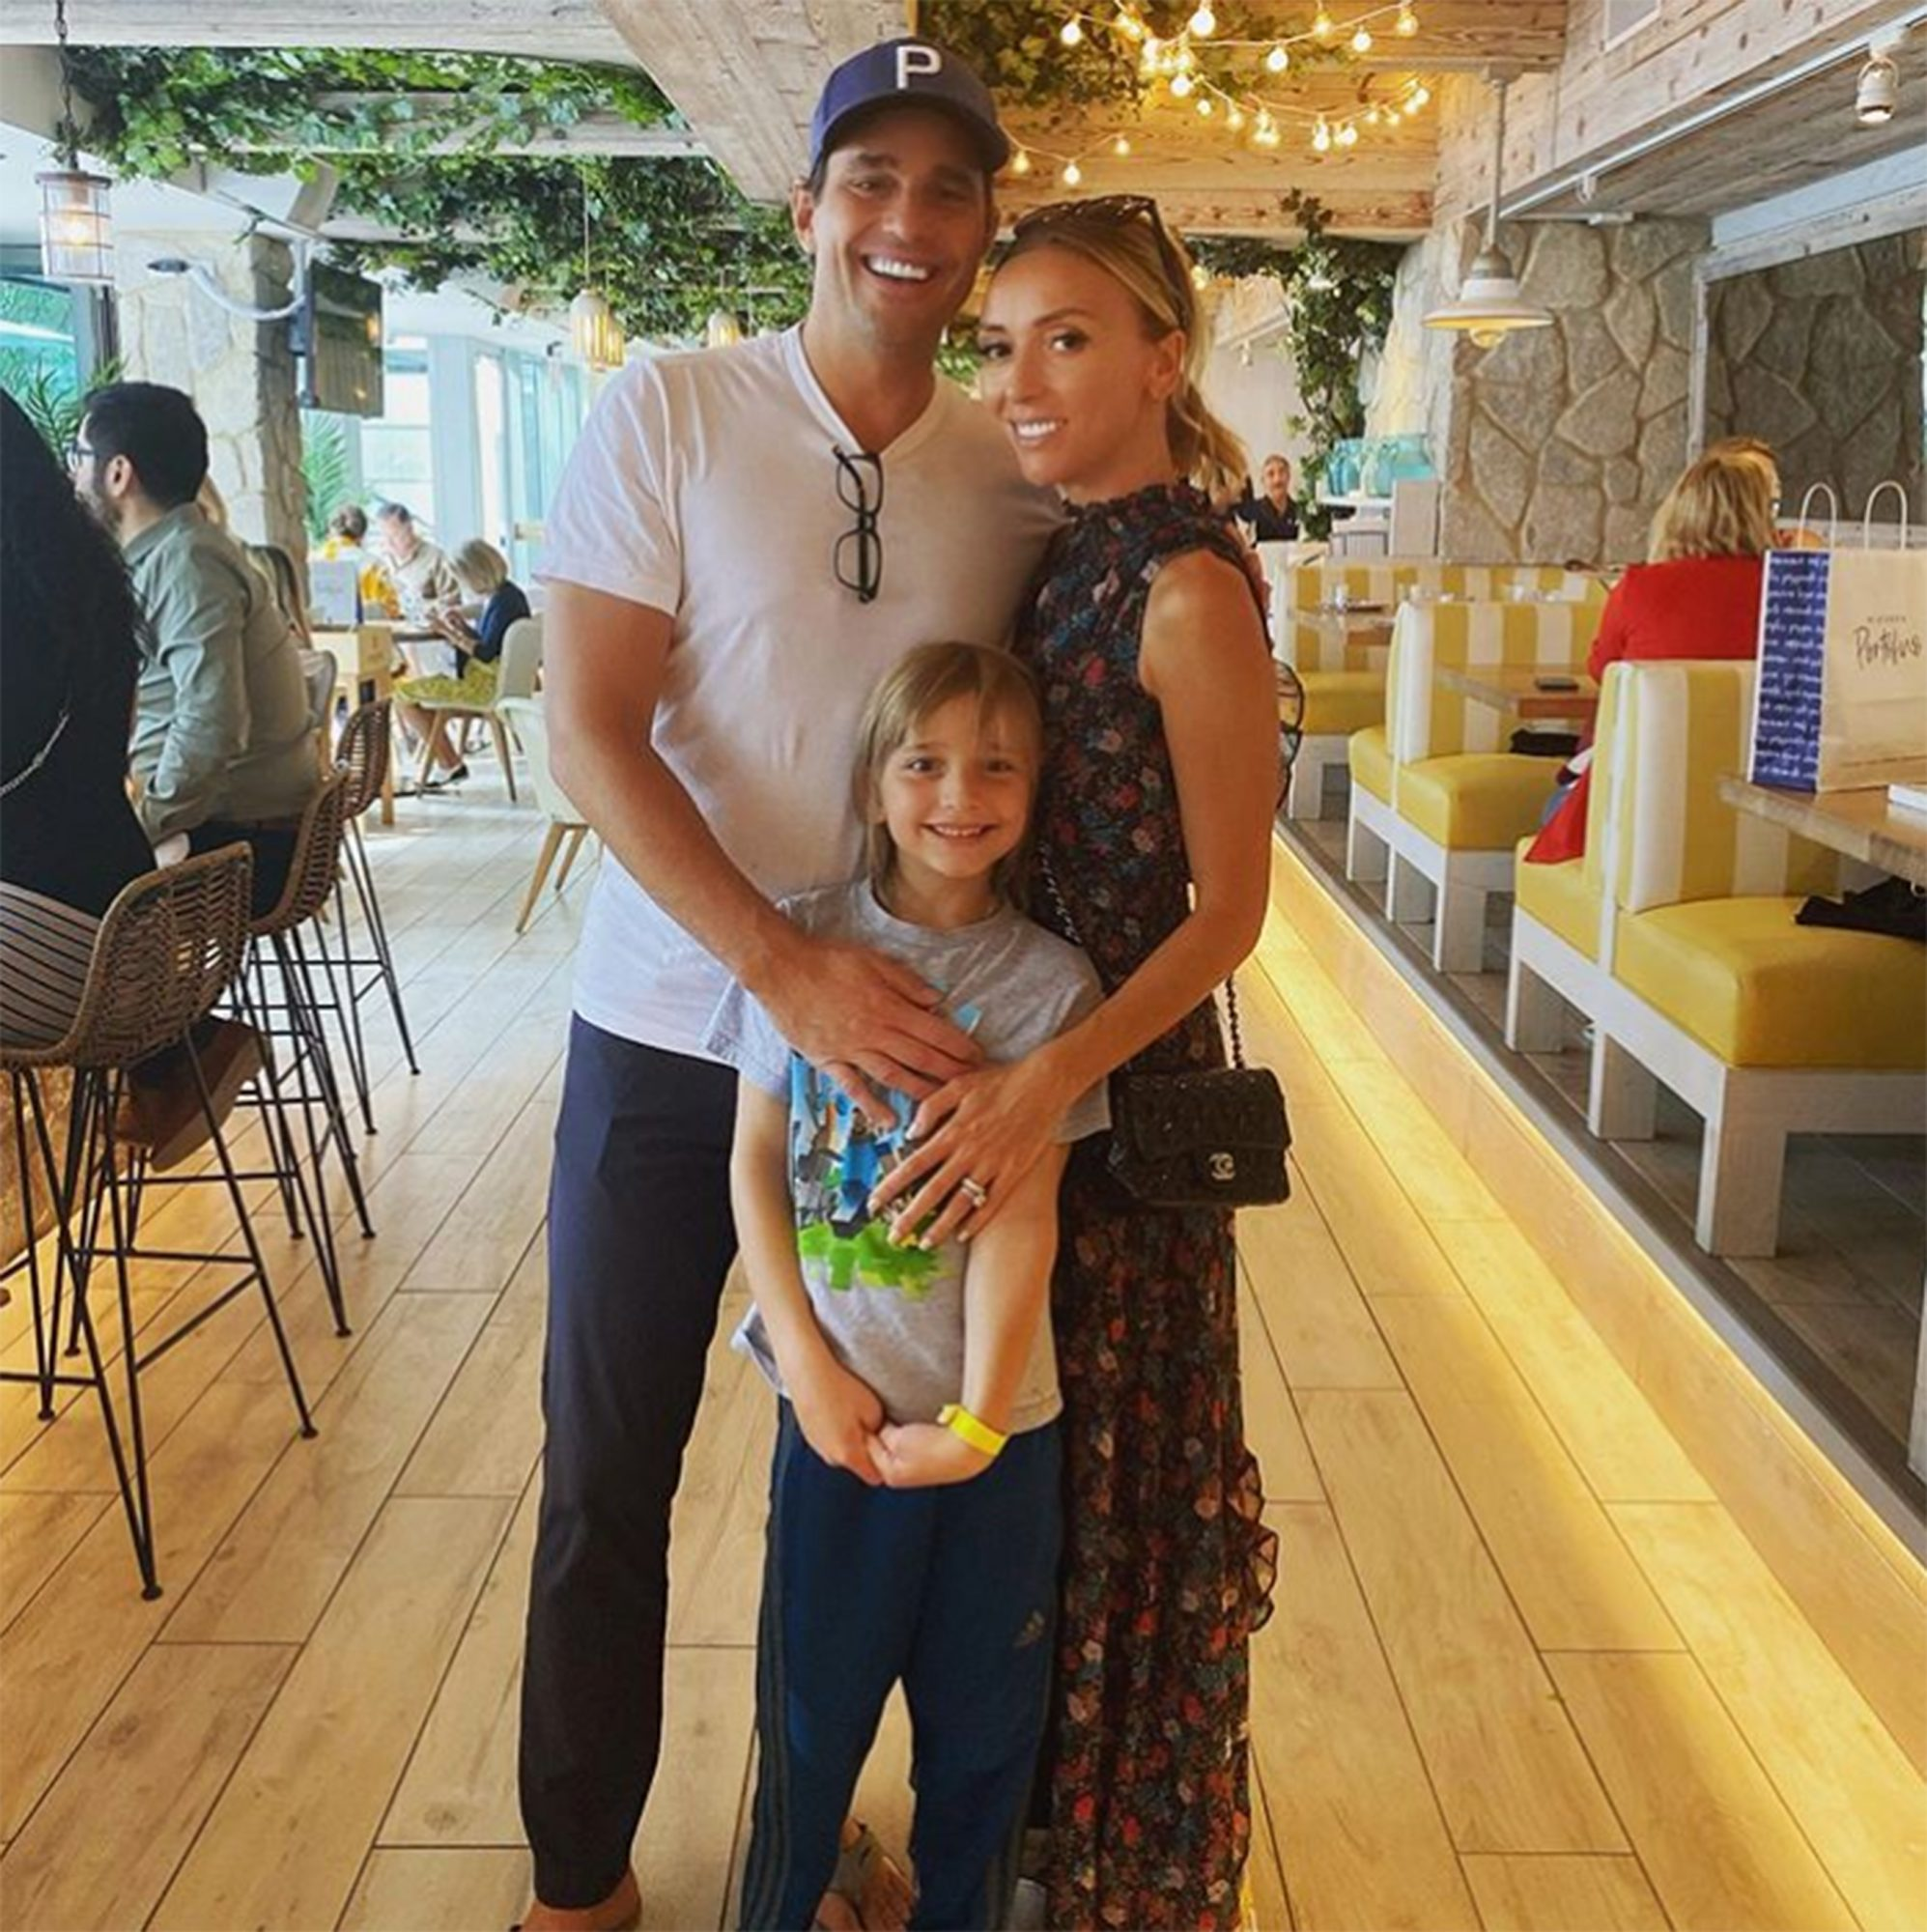 """Rancic, who was originally tapped to host the 2020 Emmys pre-show, revealed early in the show that she, her husband Bill and son Duke have tested positivefor COVID-19.                             """"Hey, everyone. As I go into my 20th year on the E! red carpet I have to say I do not take missing an award show lightly, but unfortunately, this year is just so different,"""" Rancic announced in a video clip she taped from home. """"As part of E! and NBCUniversal's very strict testing guidelines, especially before an event like this, I did find out that I tested positive for COVID-19. Now as much as I didn't want to hear that, I'm very thankful I heard it before I traveled and possibly could have exposed other people. So for that, I'm thankful.""""                             Rancic continued, """"As far as my health, I'm doing well. My husband Bill and our son also did test positive, but we're all doing well and taking care of each other so I'm going to get back to doing that. But I just want to say I'm wishing you all the best and please protect yourselves and protect those around you. Take good care and I'll see you on the next red carpet.""""                             The pre-show was instead hosted by Brad Goreski and Nina Parker."""